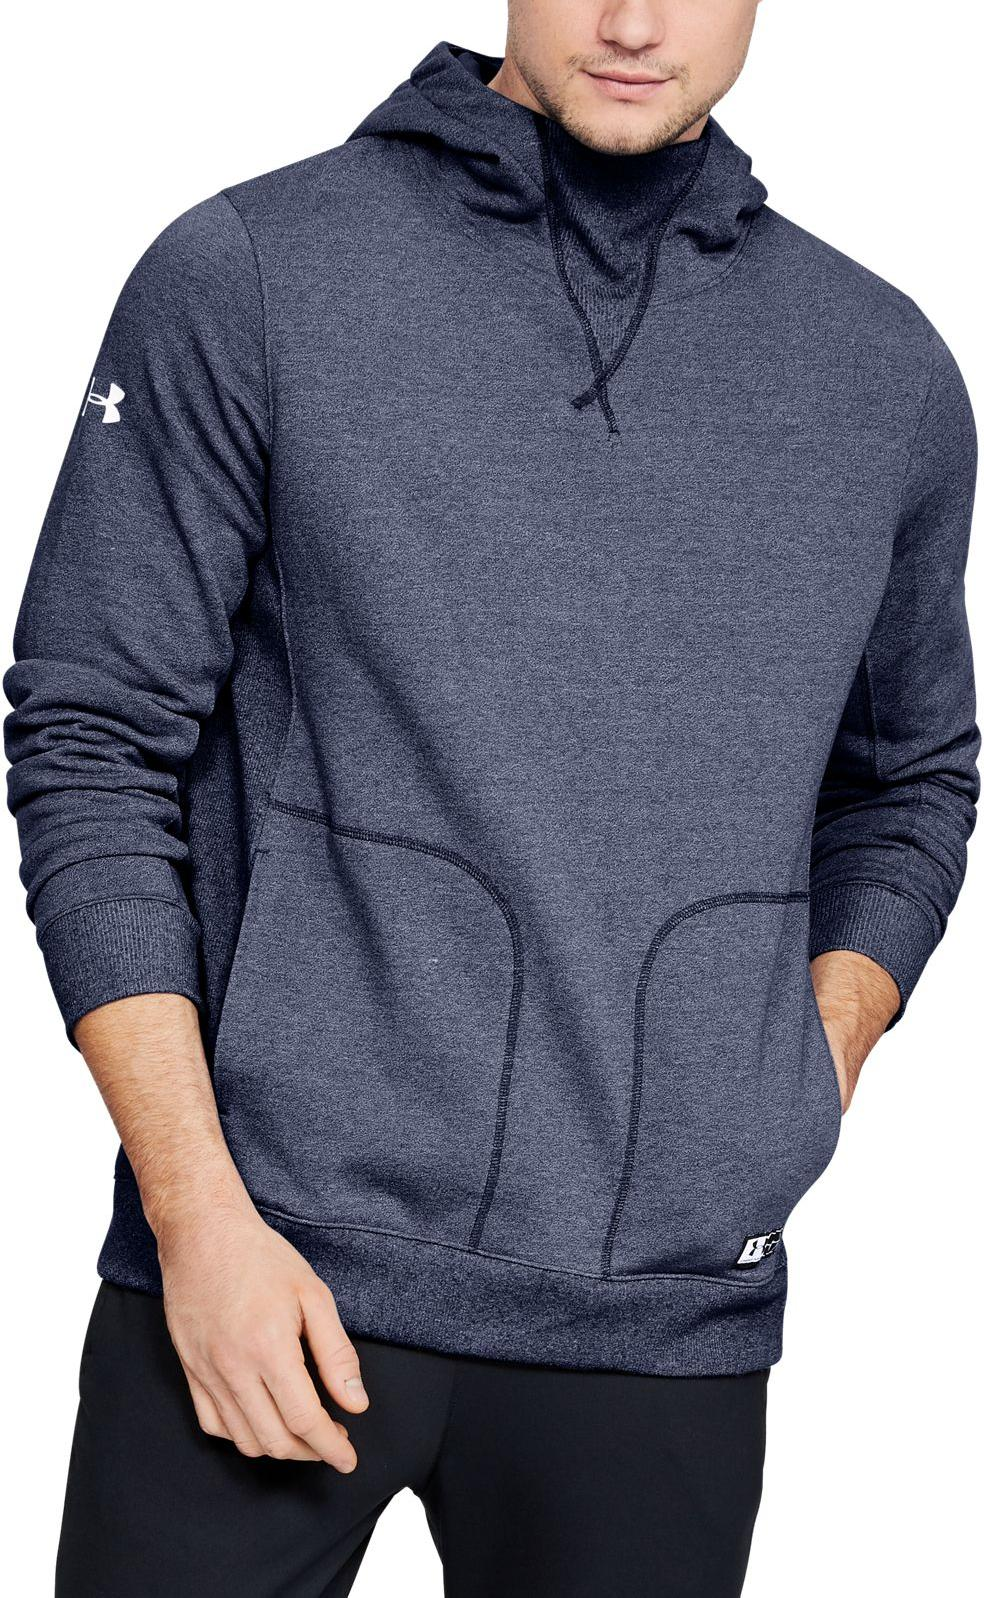 Hooded sweatshirt Under Armour Accelerate Hoodie